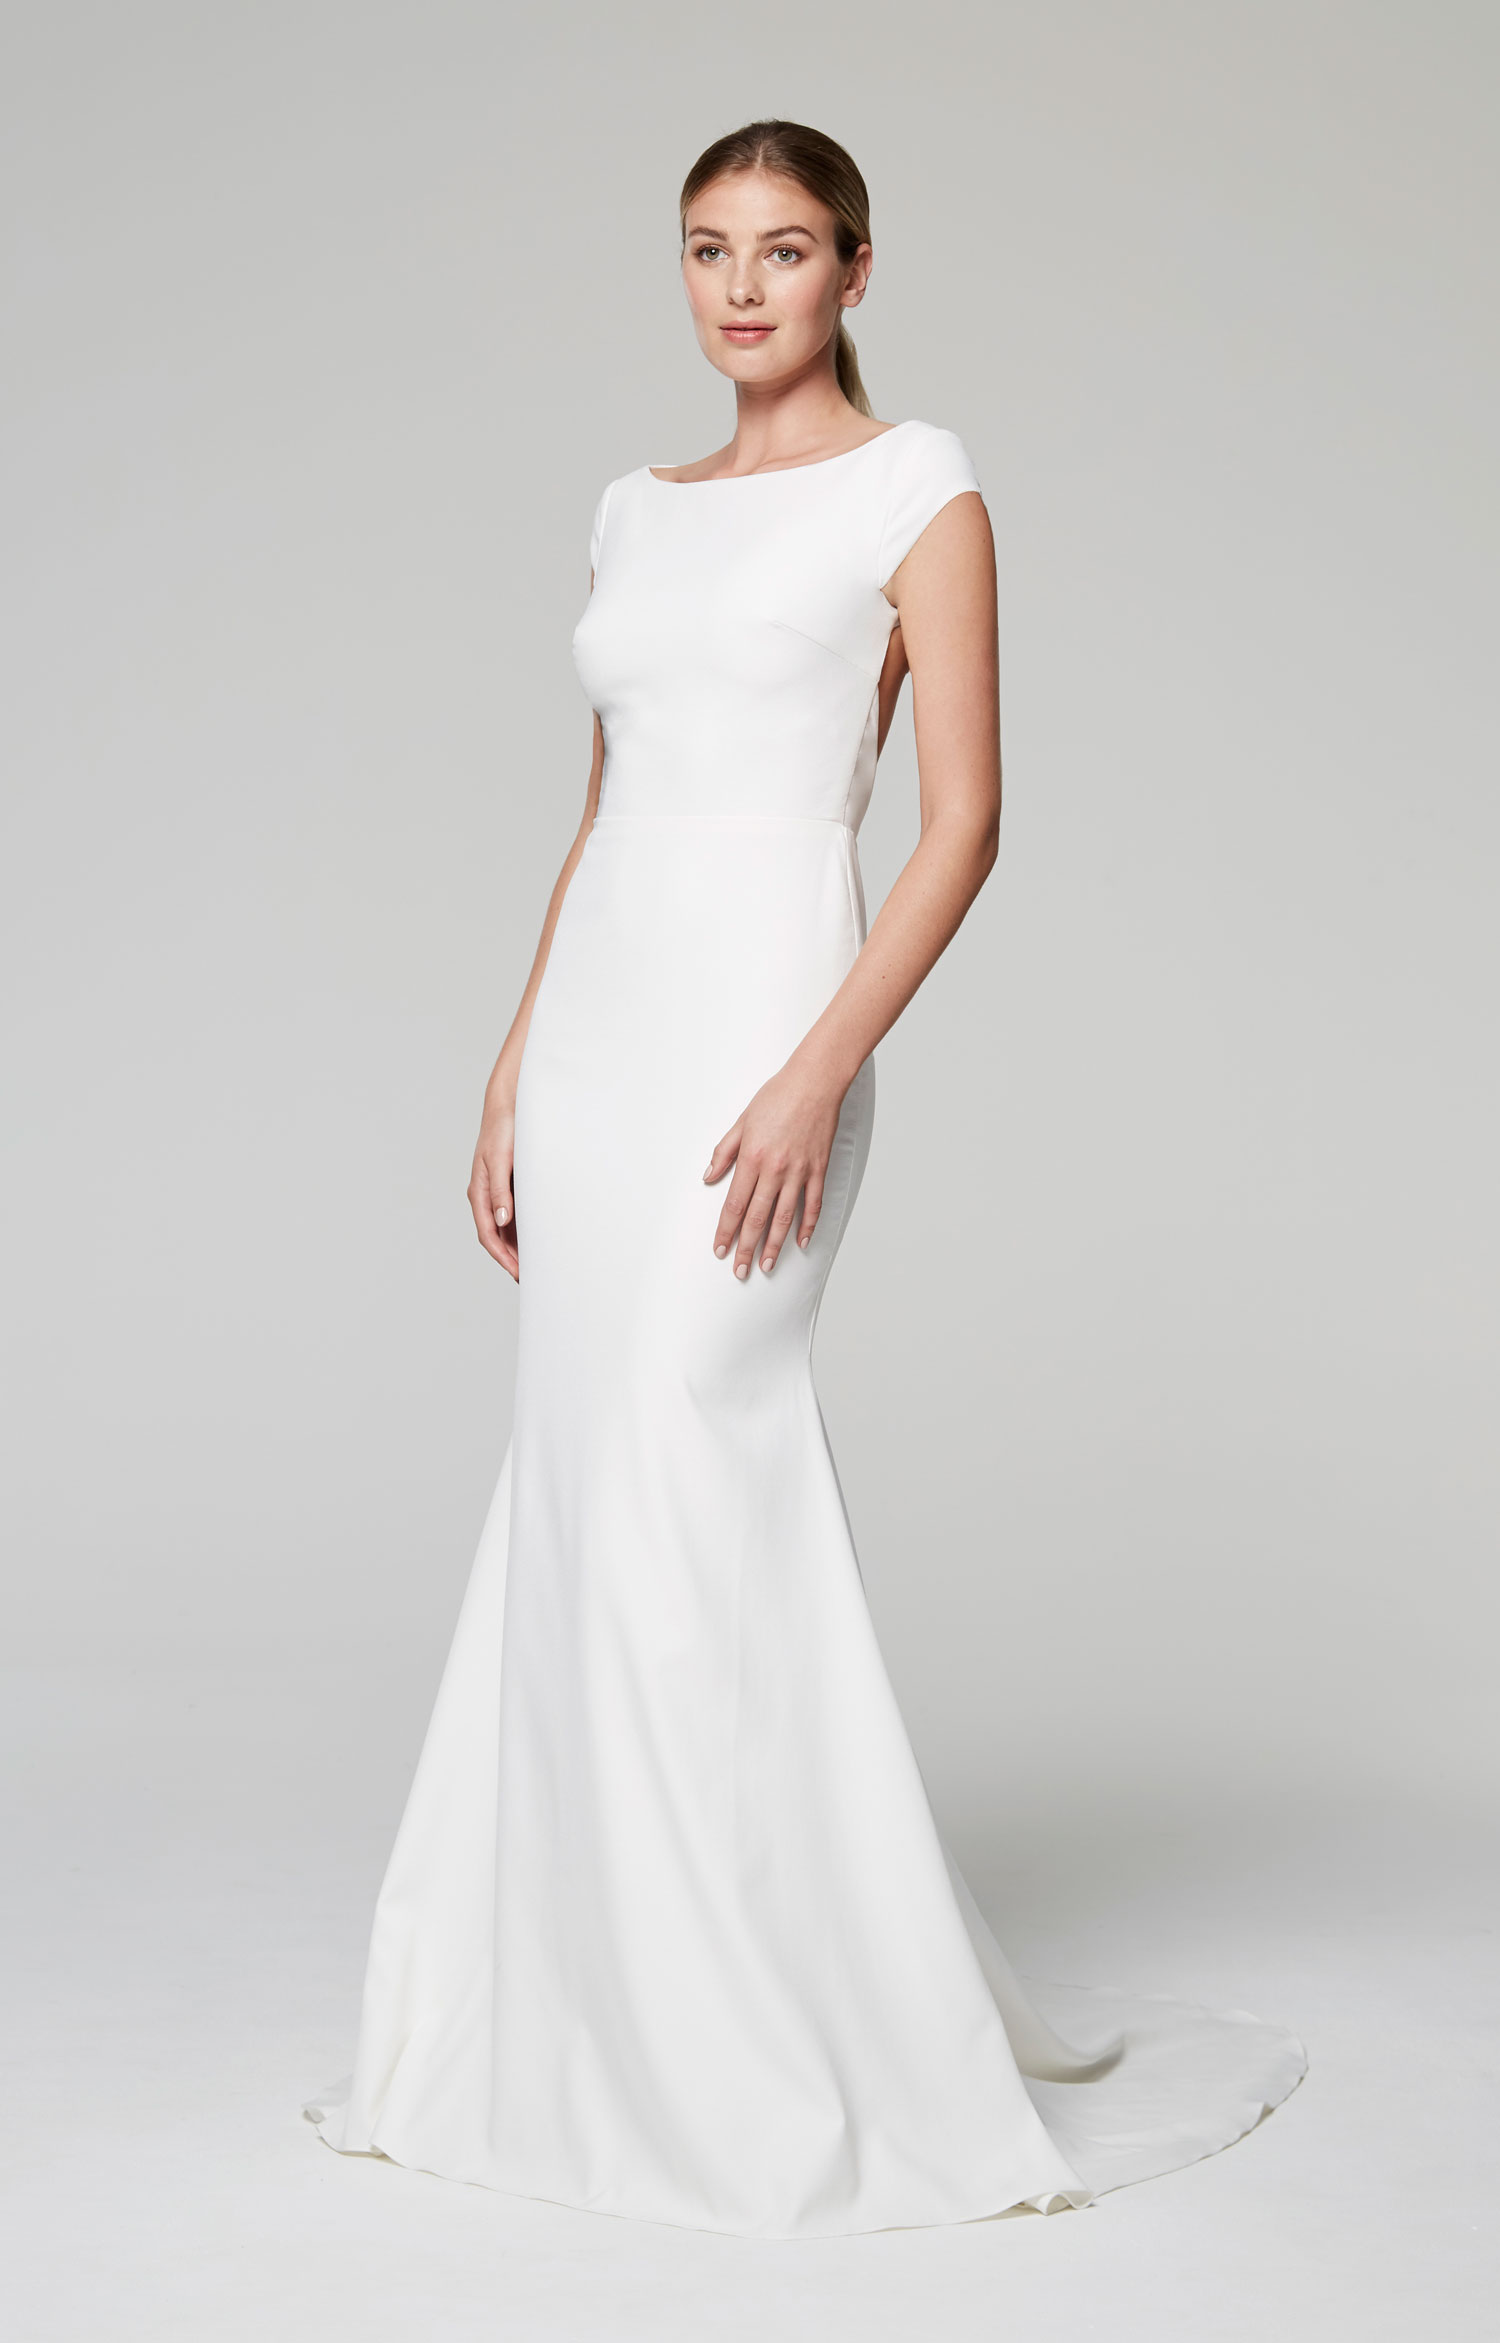 7764474c767e Anne Barge Blue Willow Bride Fall 2018 collection crepe gown with bateau  neckline and cap sleeves